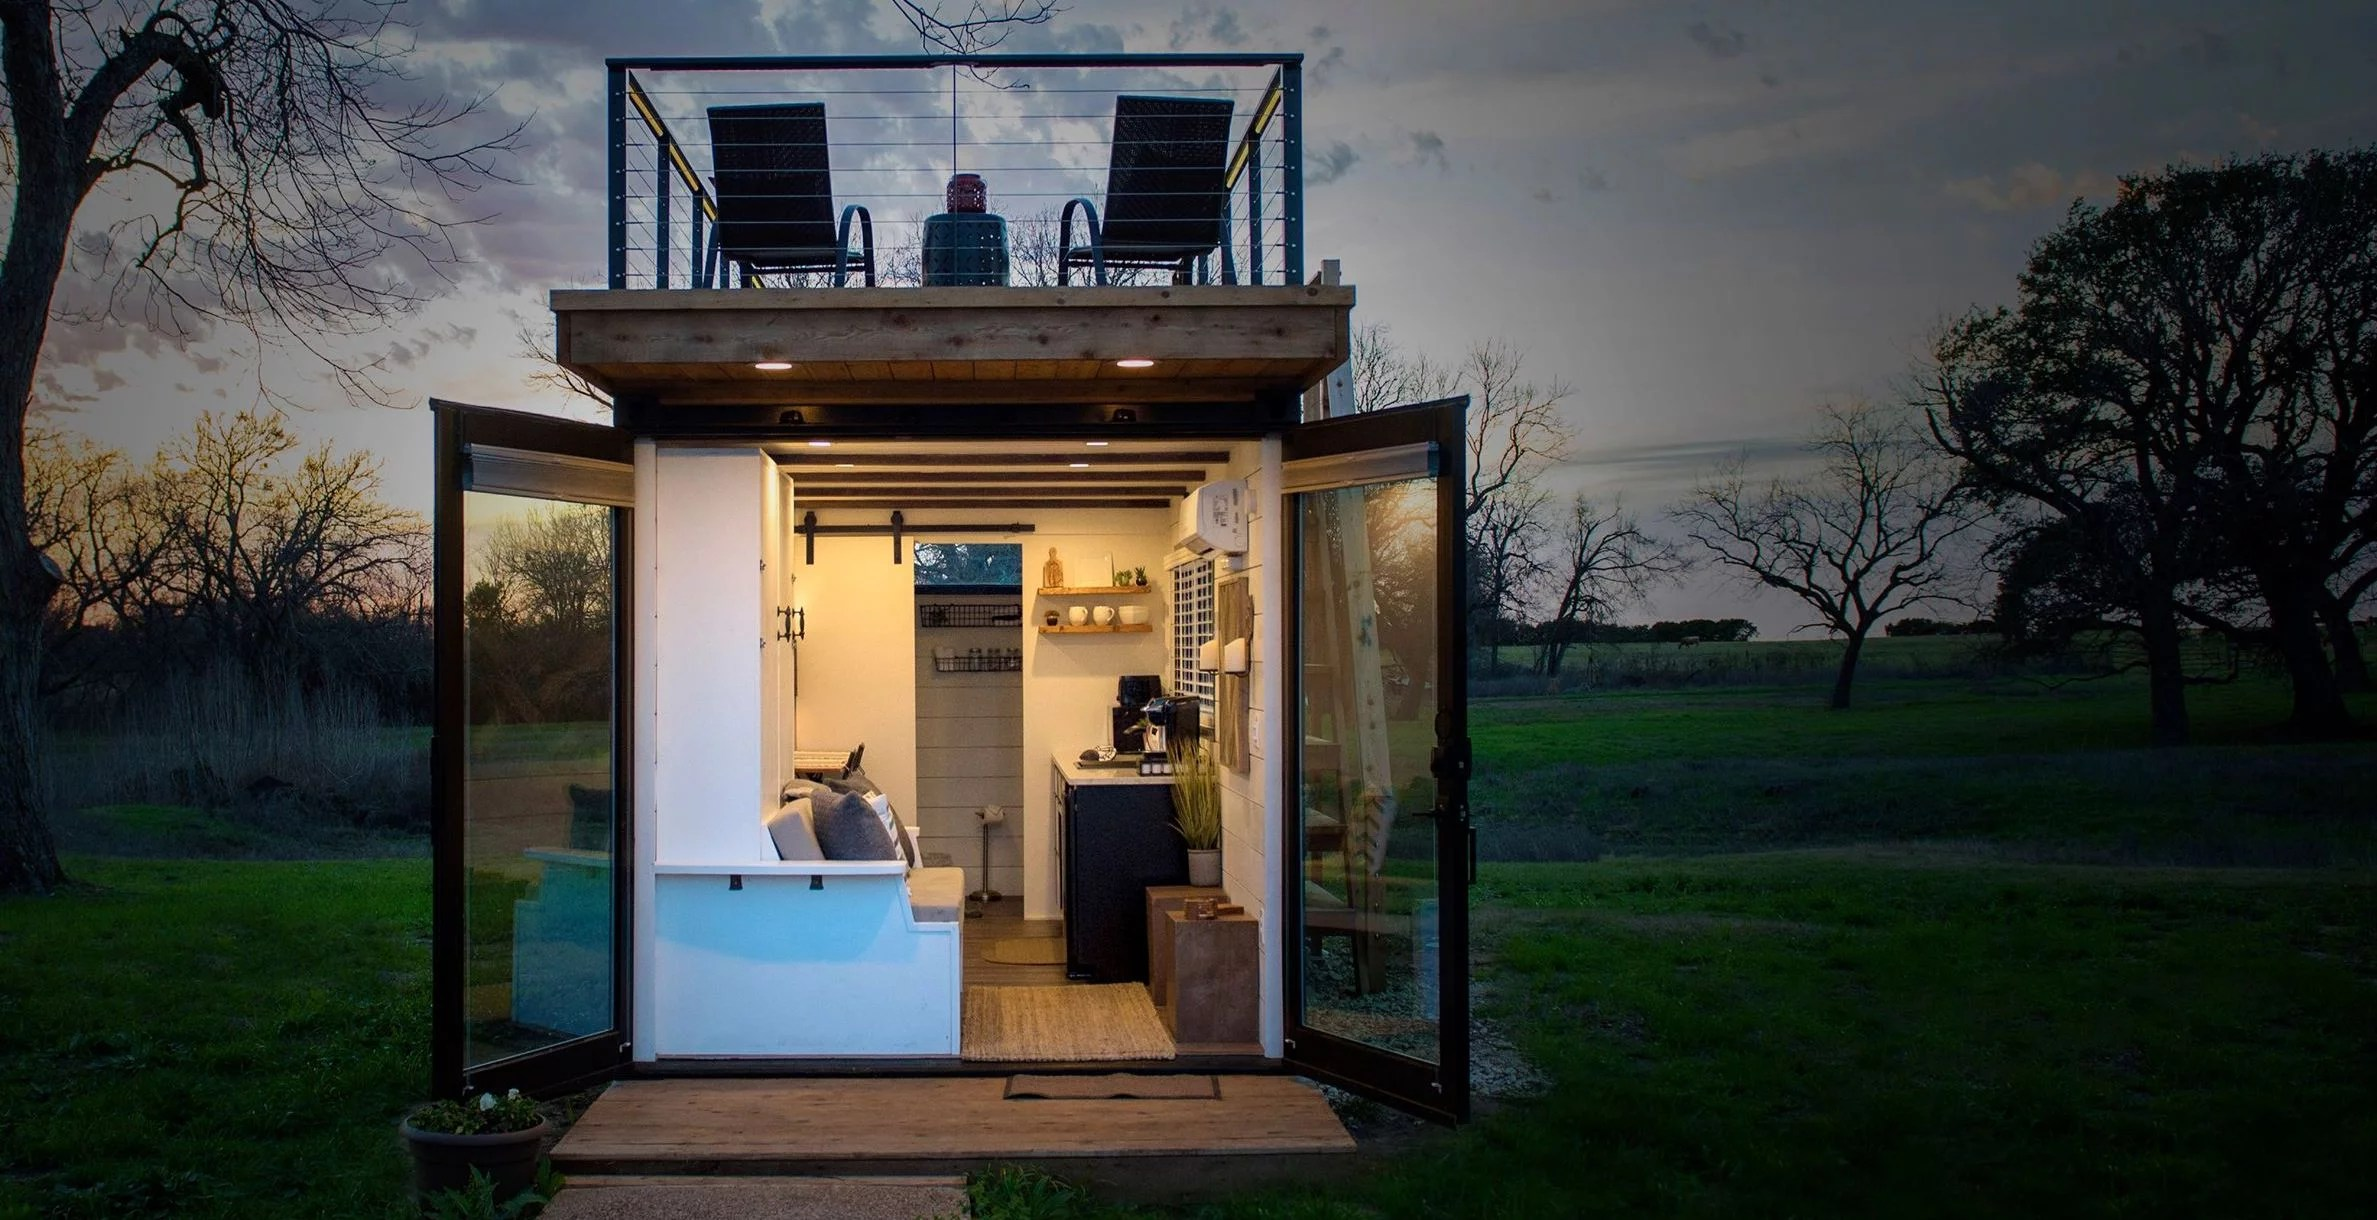 Cargohome Tiny House Aus Alten Seecontainern